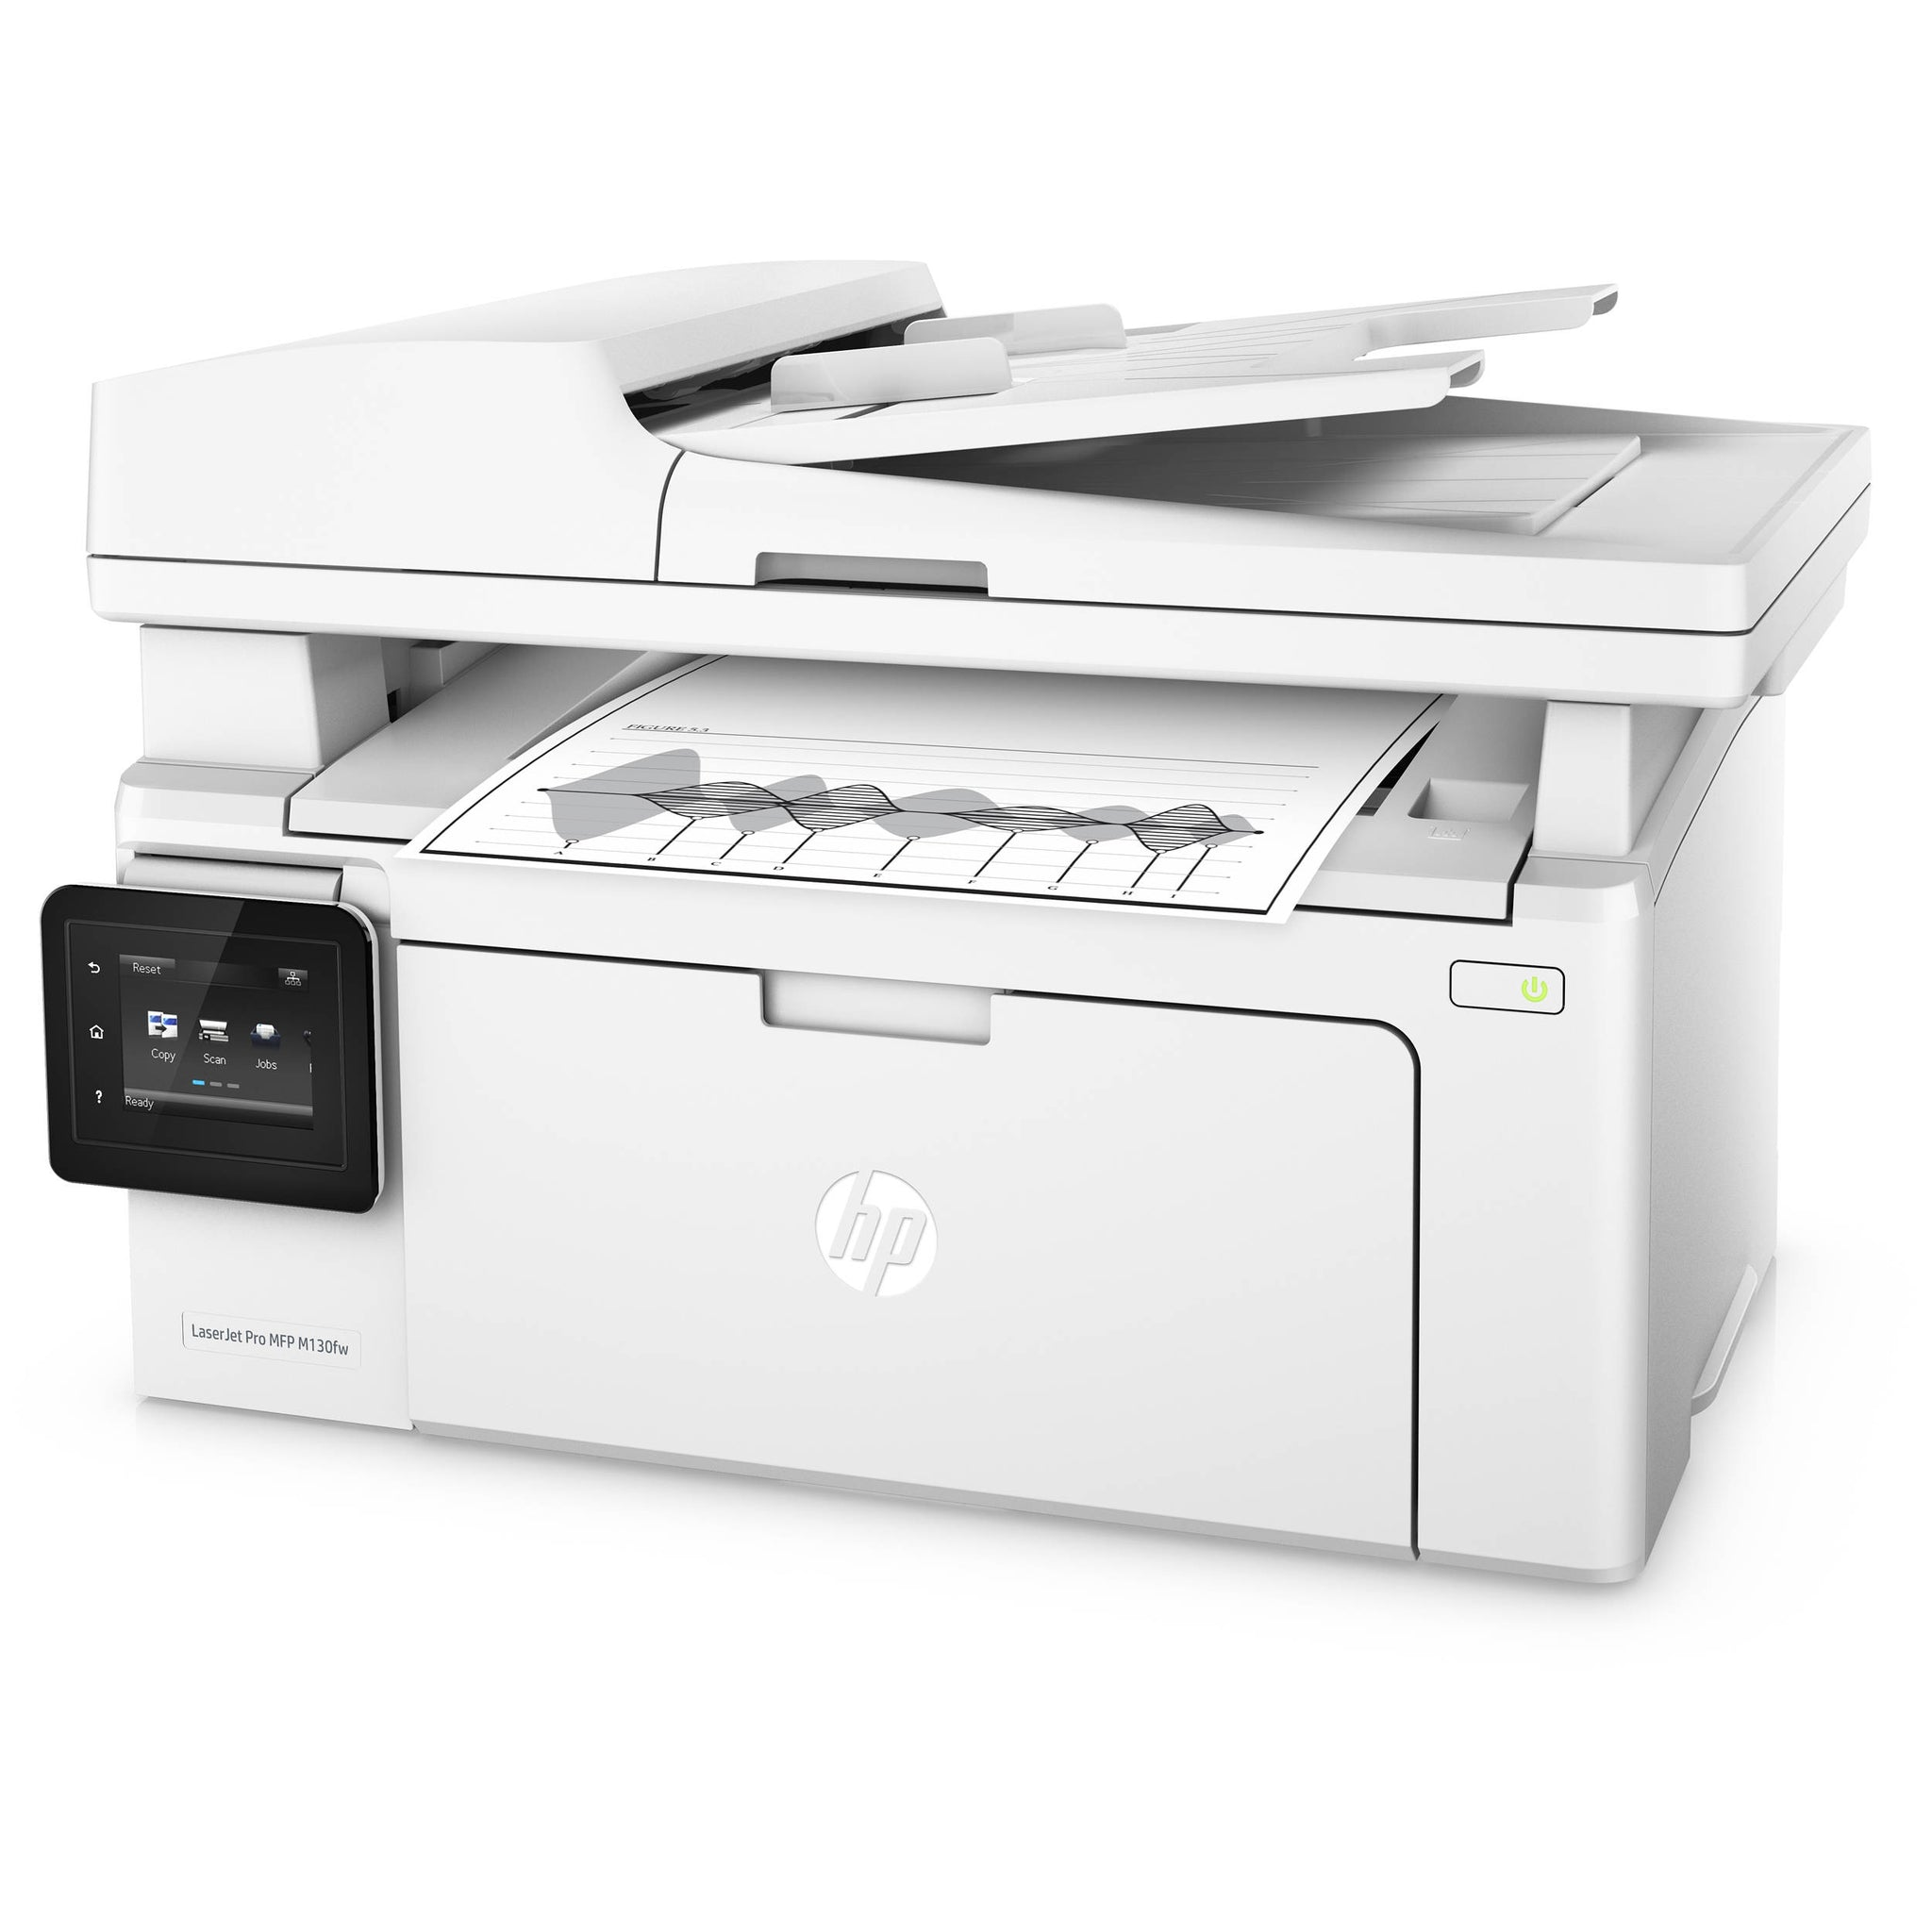 PRINTER HP M130fw Laserjet